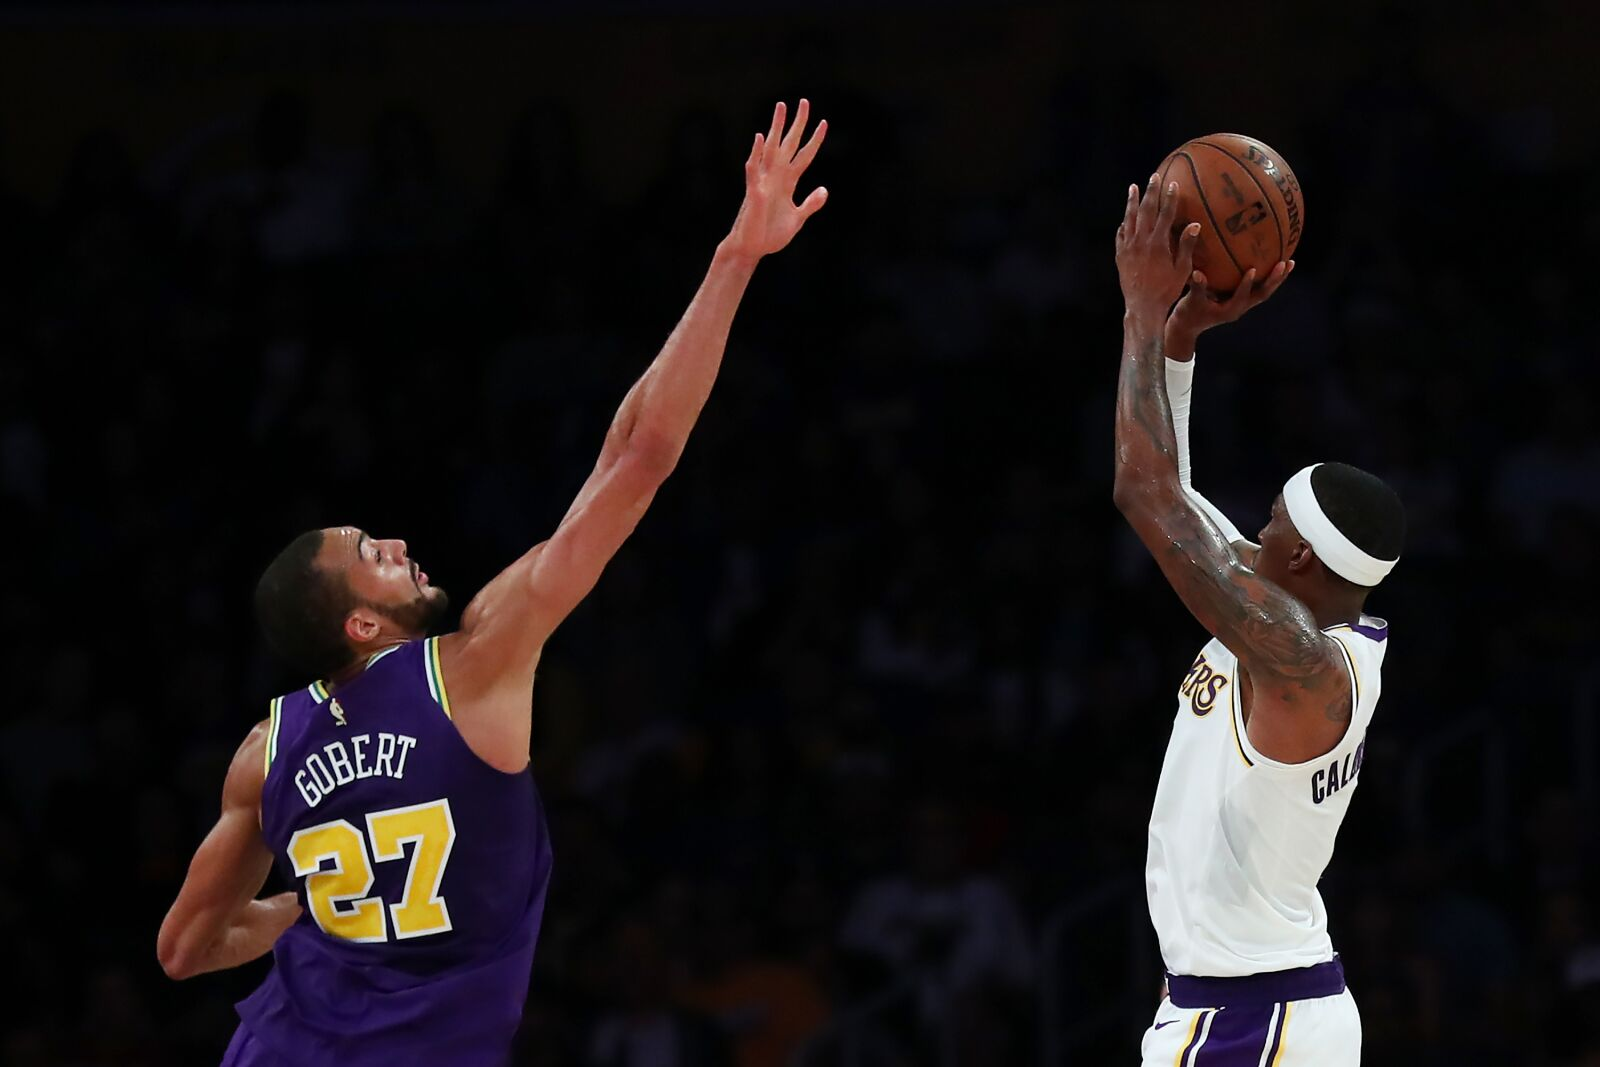 Utah Jazz Fans: Cut the complaints; appreciate Rudy Gobert for the game-altering talent he is